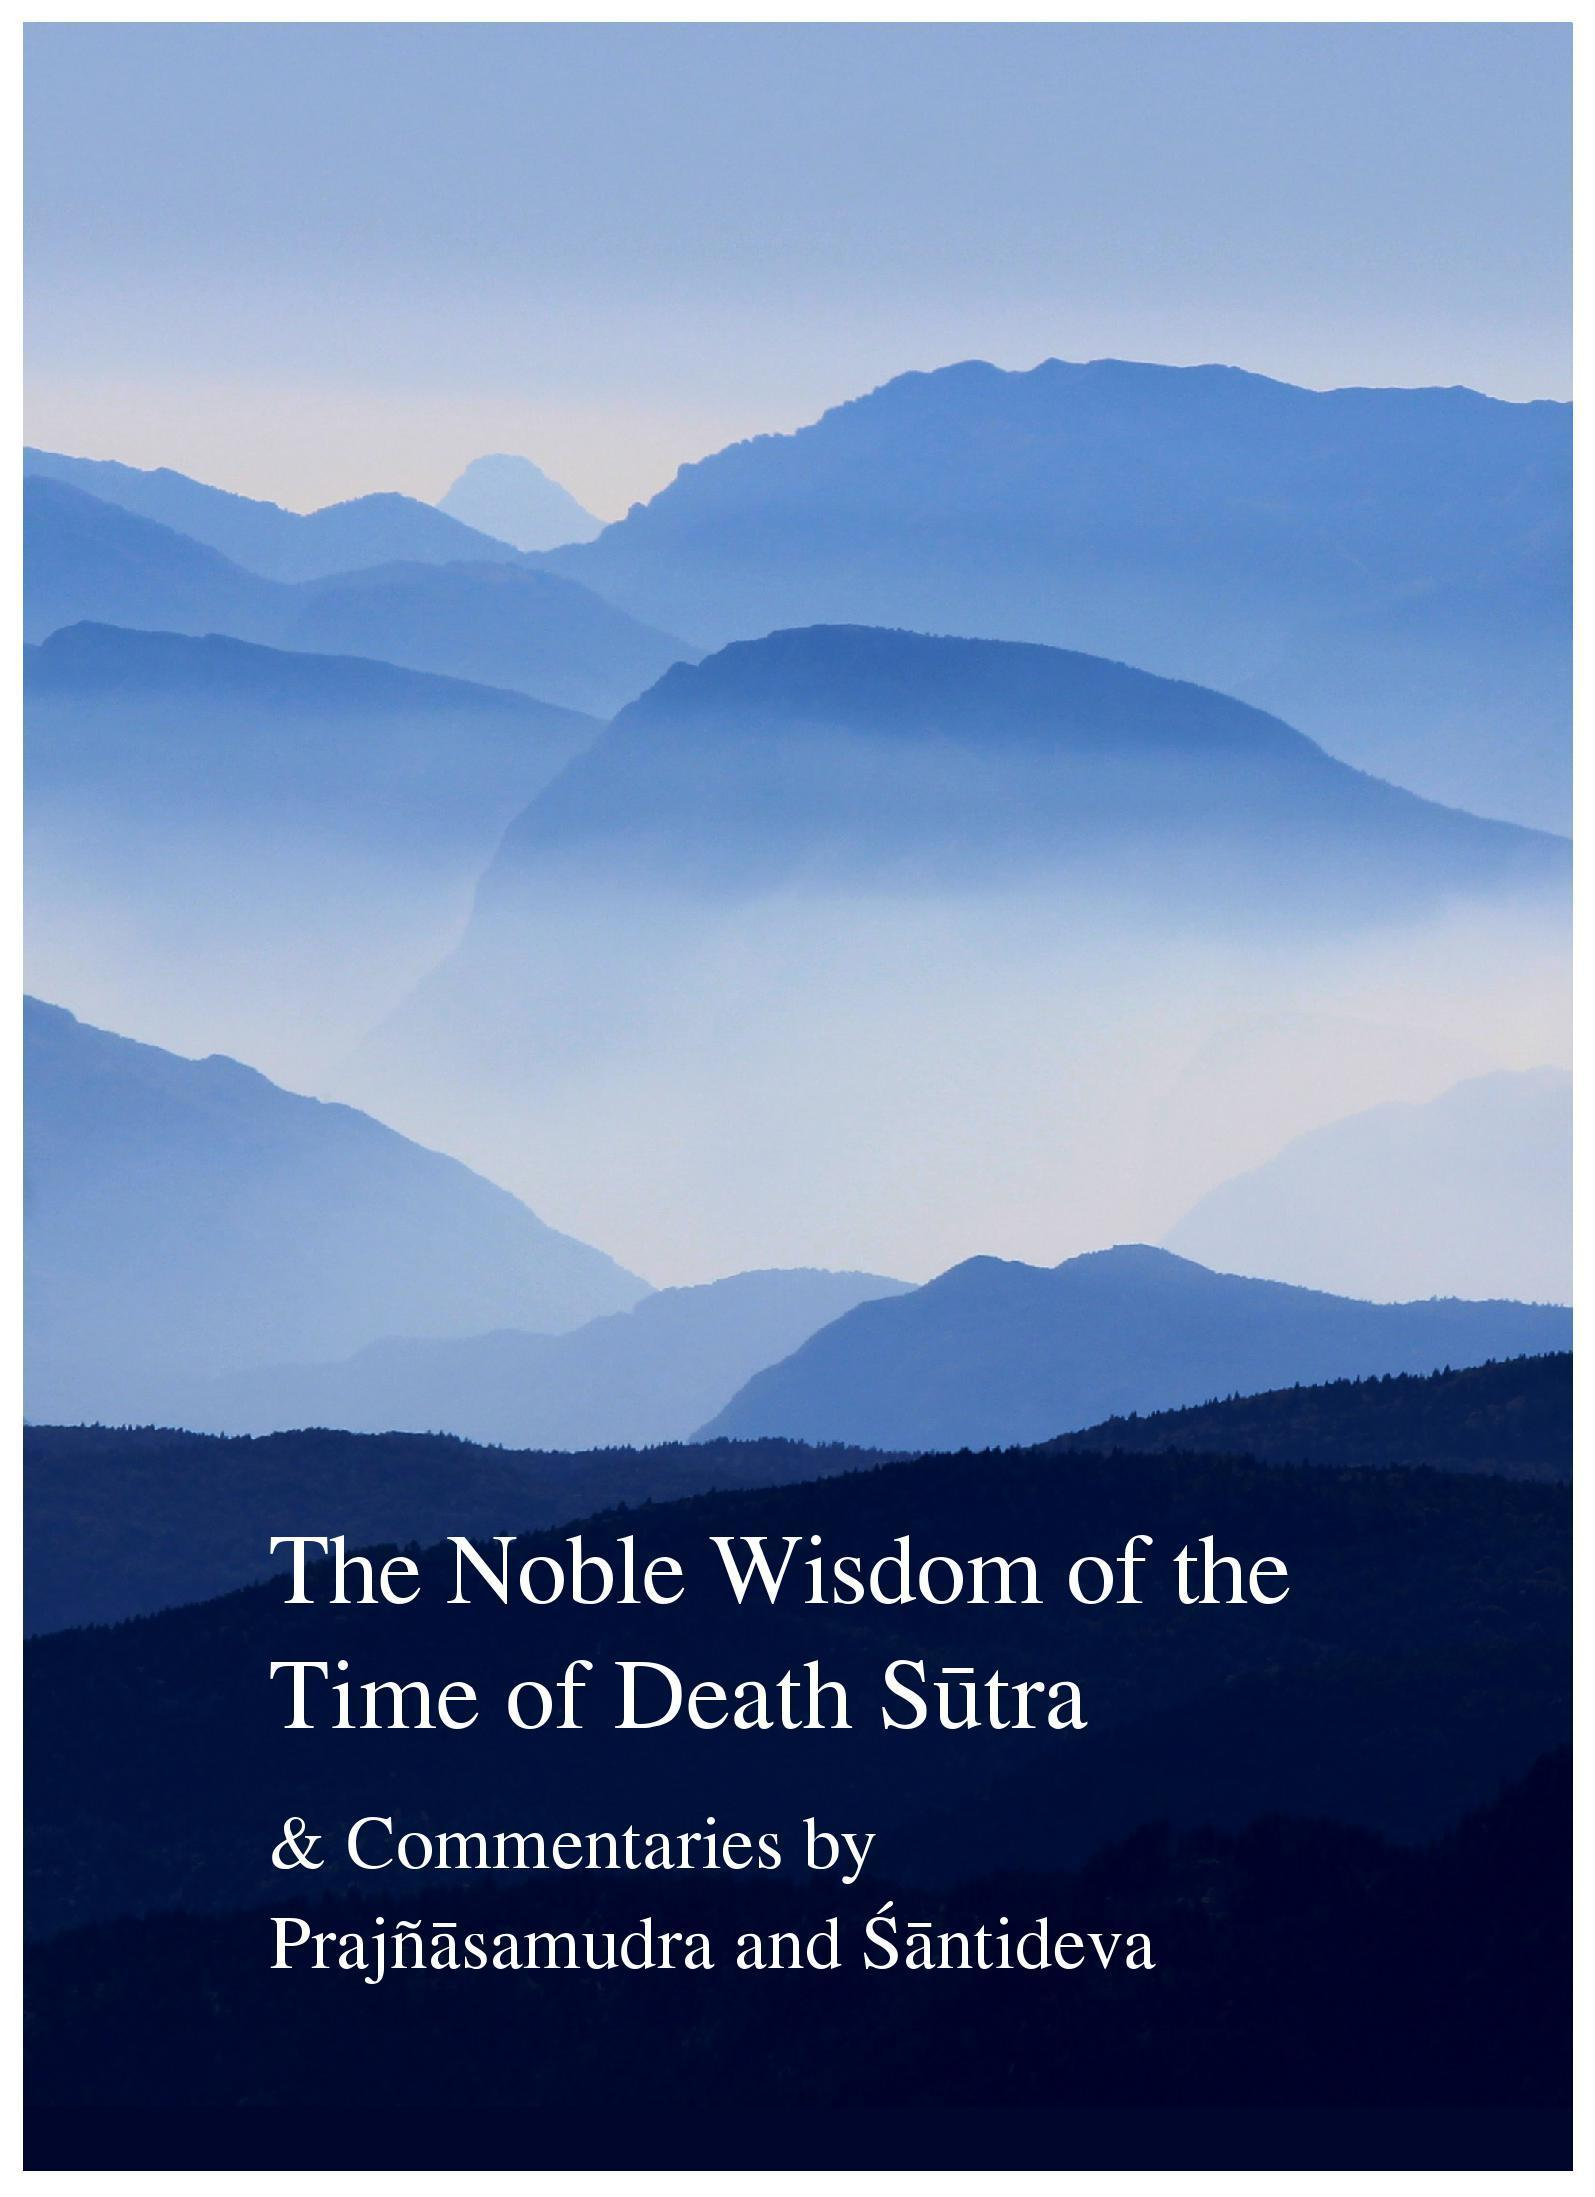 The Noble Wisdom Of Death Sutra Book Cover